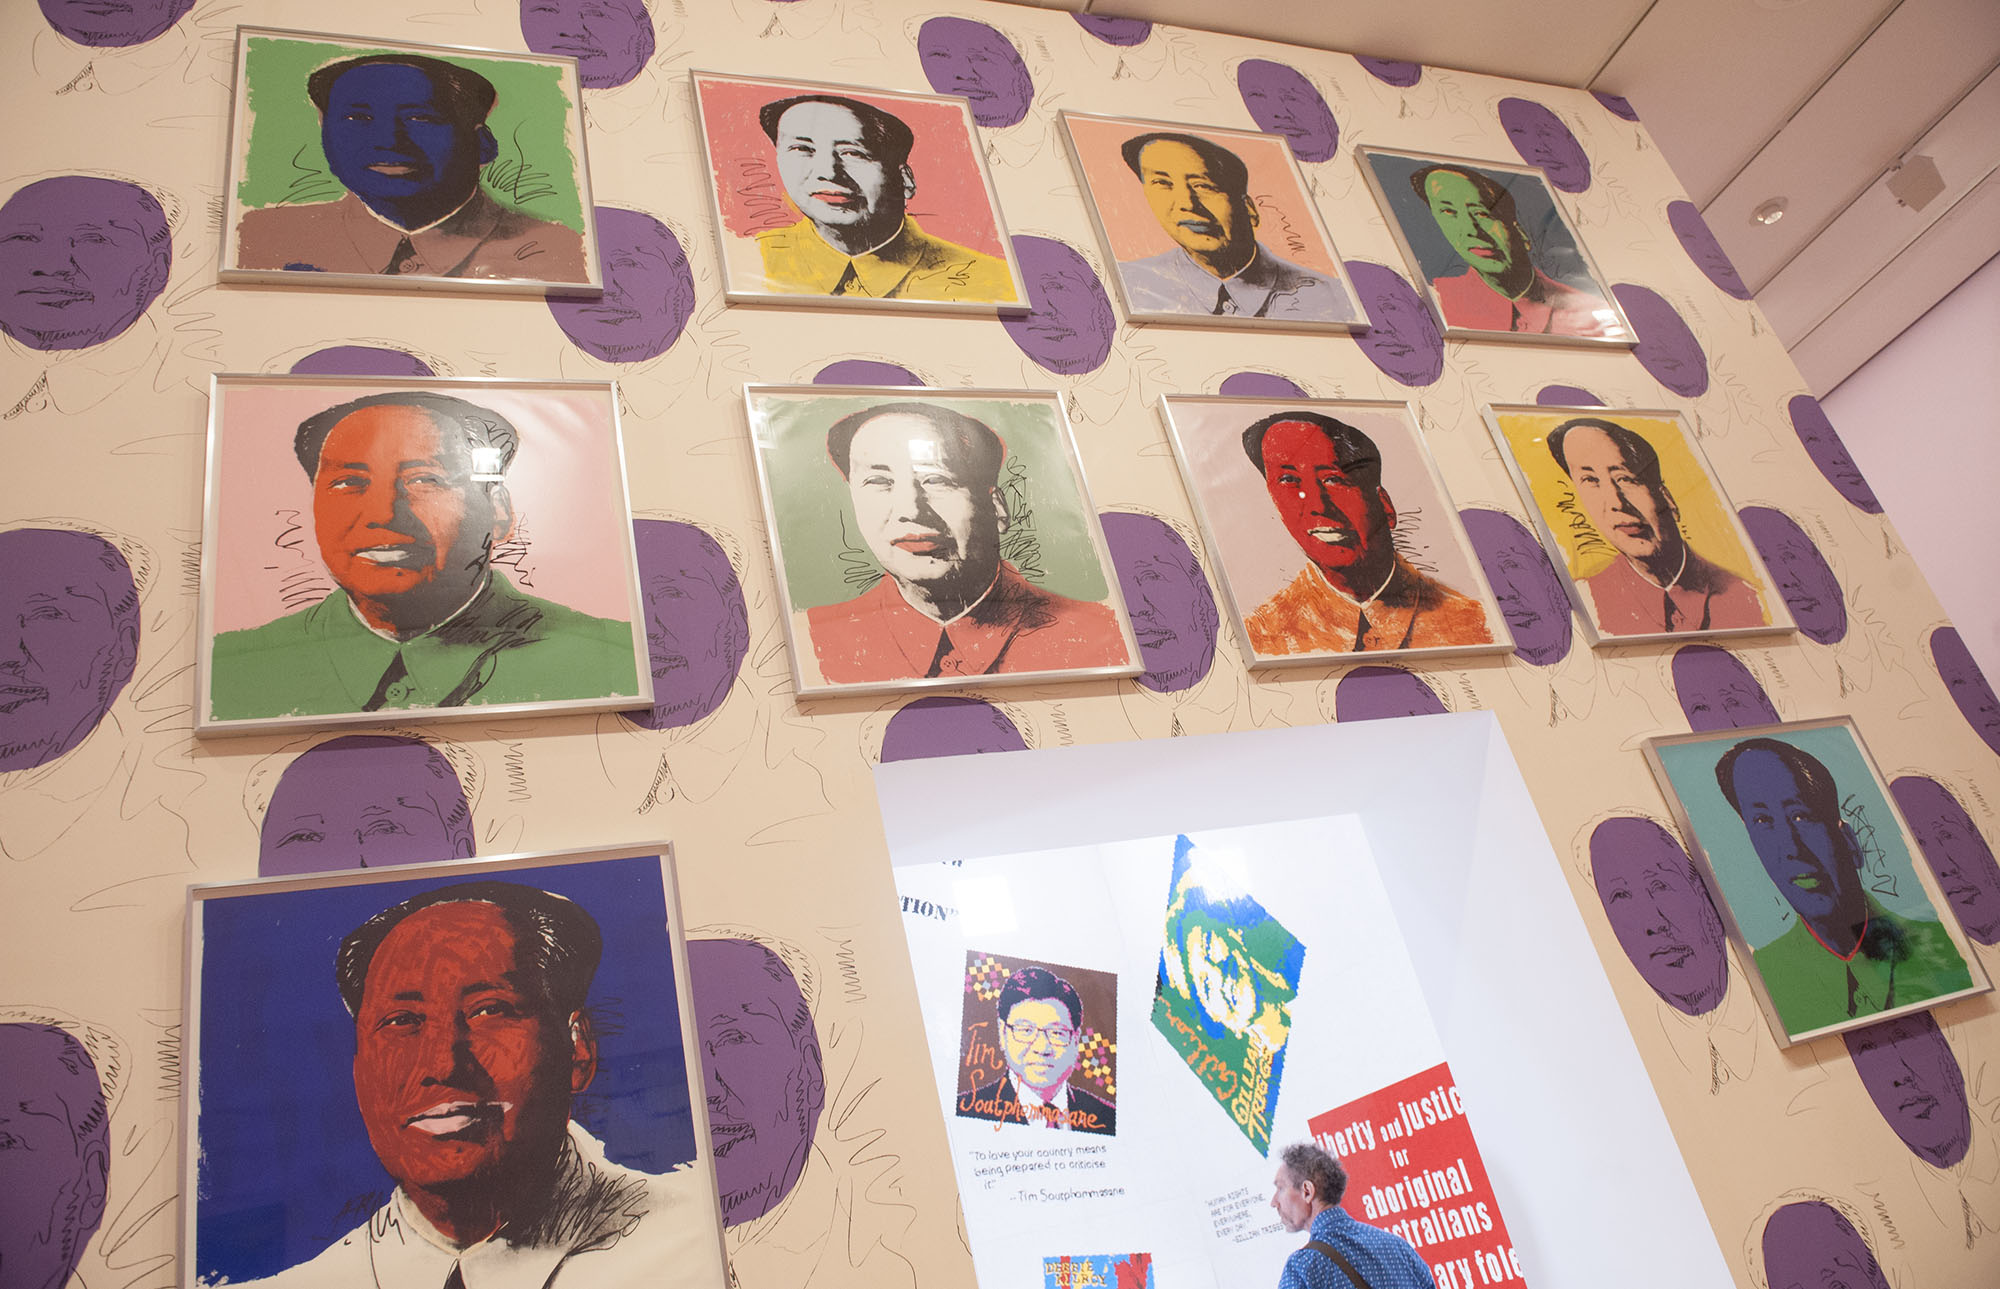 Screen prints of Mao Zedong (Andy Warhol) - image courtesy of Kirsty Umback